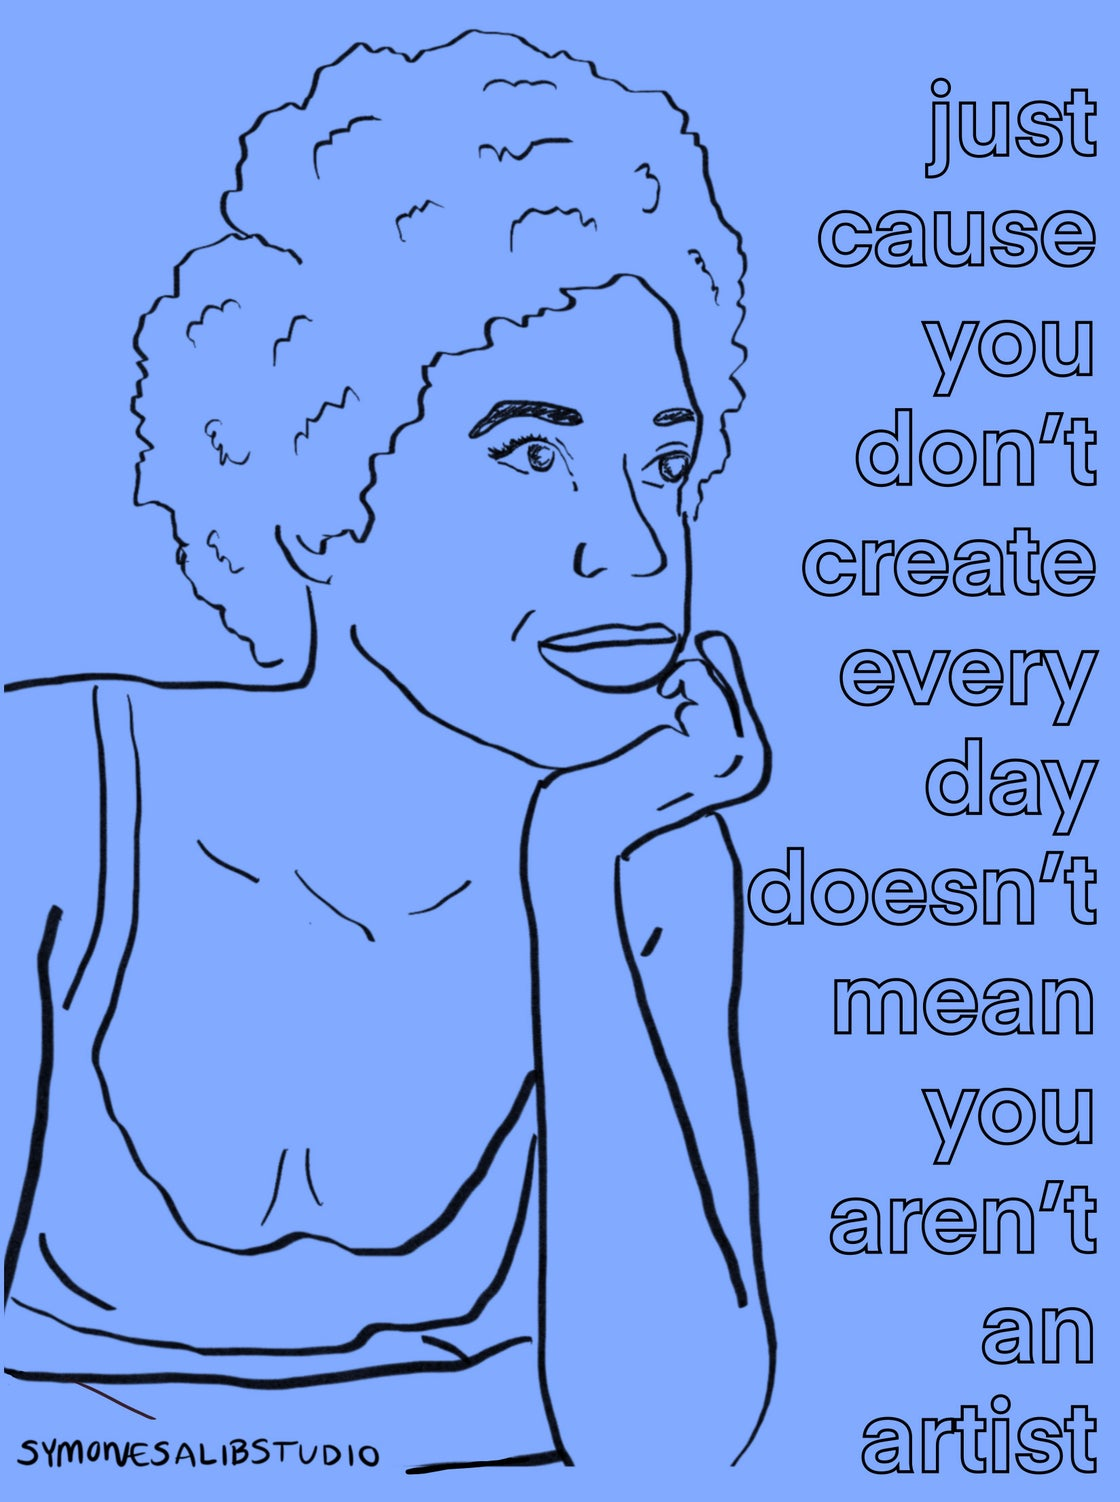 Image of Just Cause You Don't Create Every Day Doesn't Mean You Aren't An Artist